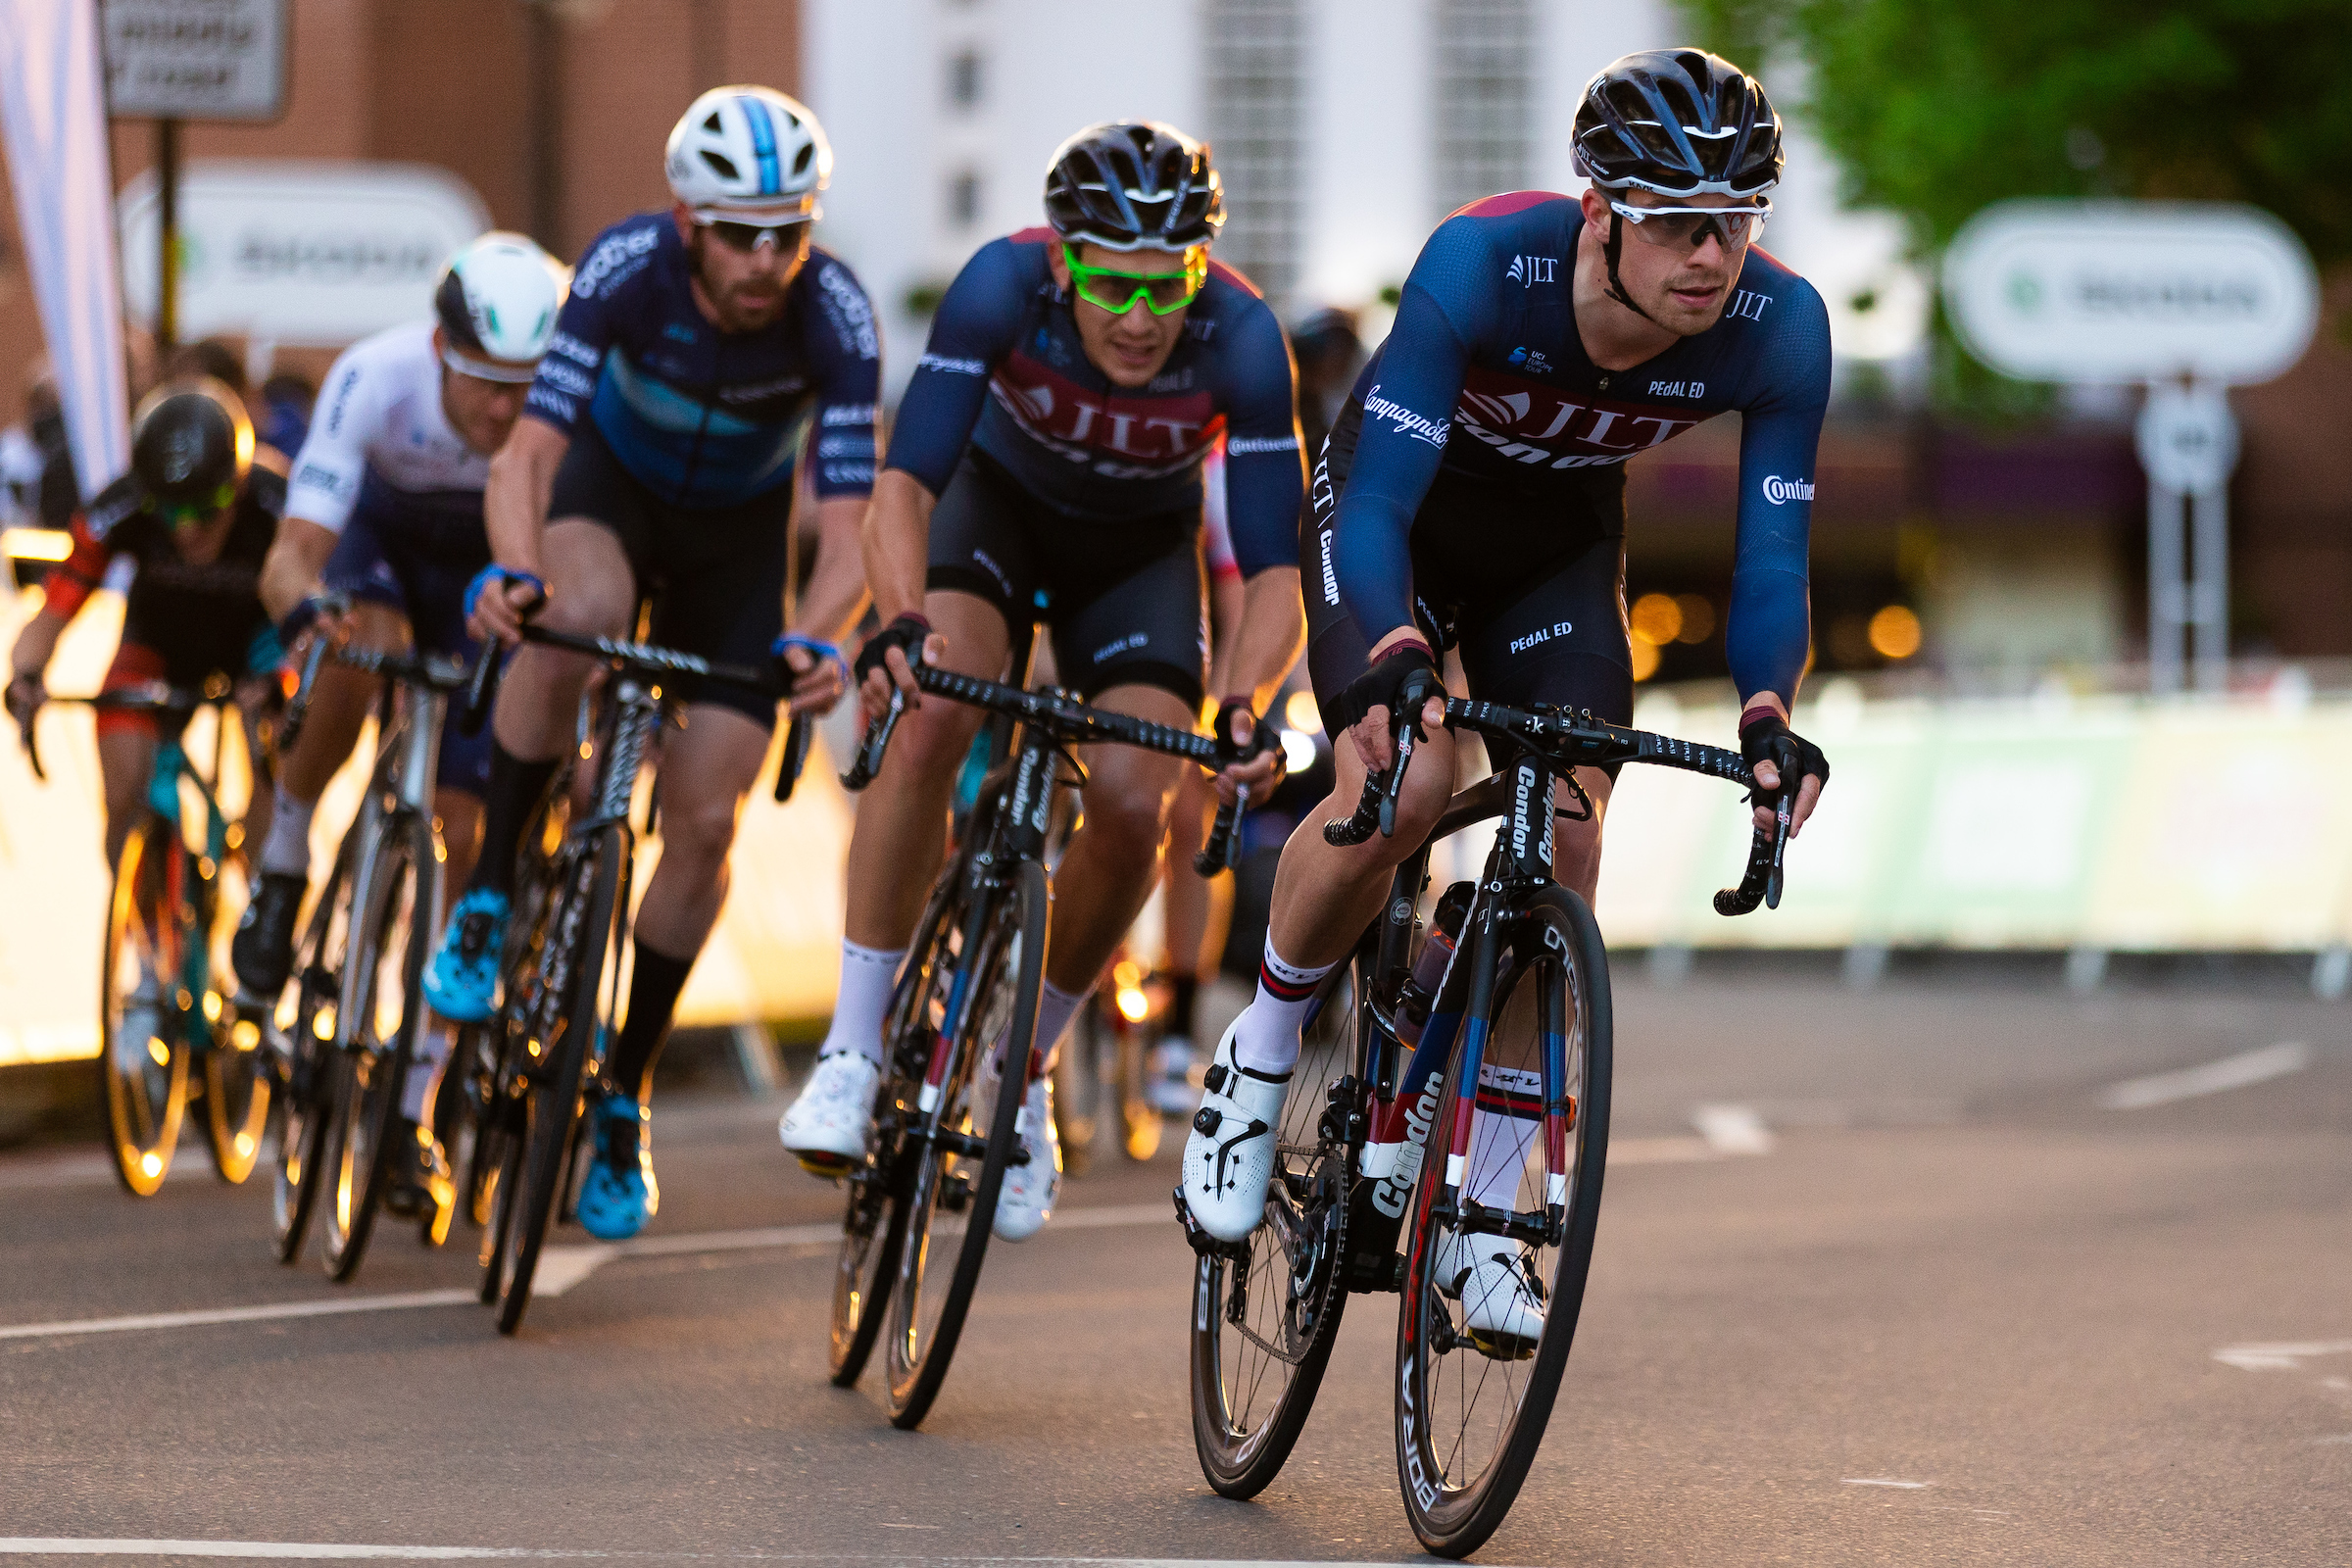 f893dcf0d JLT Condor professional cycling team to cease at the end of the 2018 season